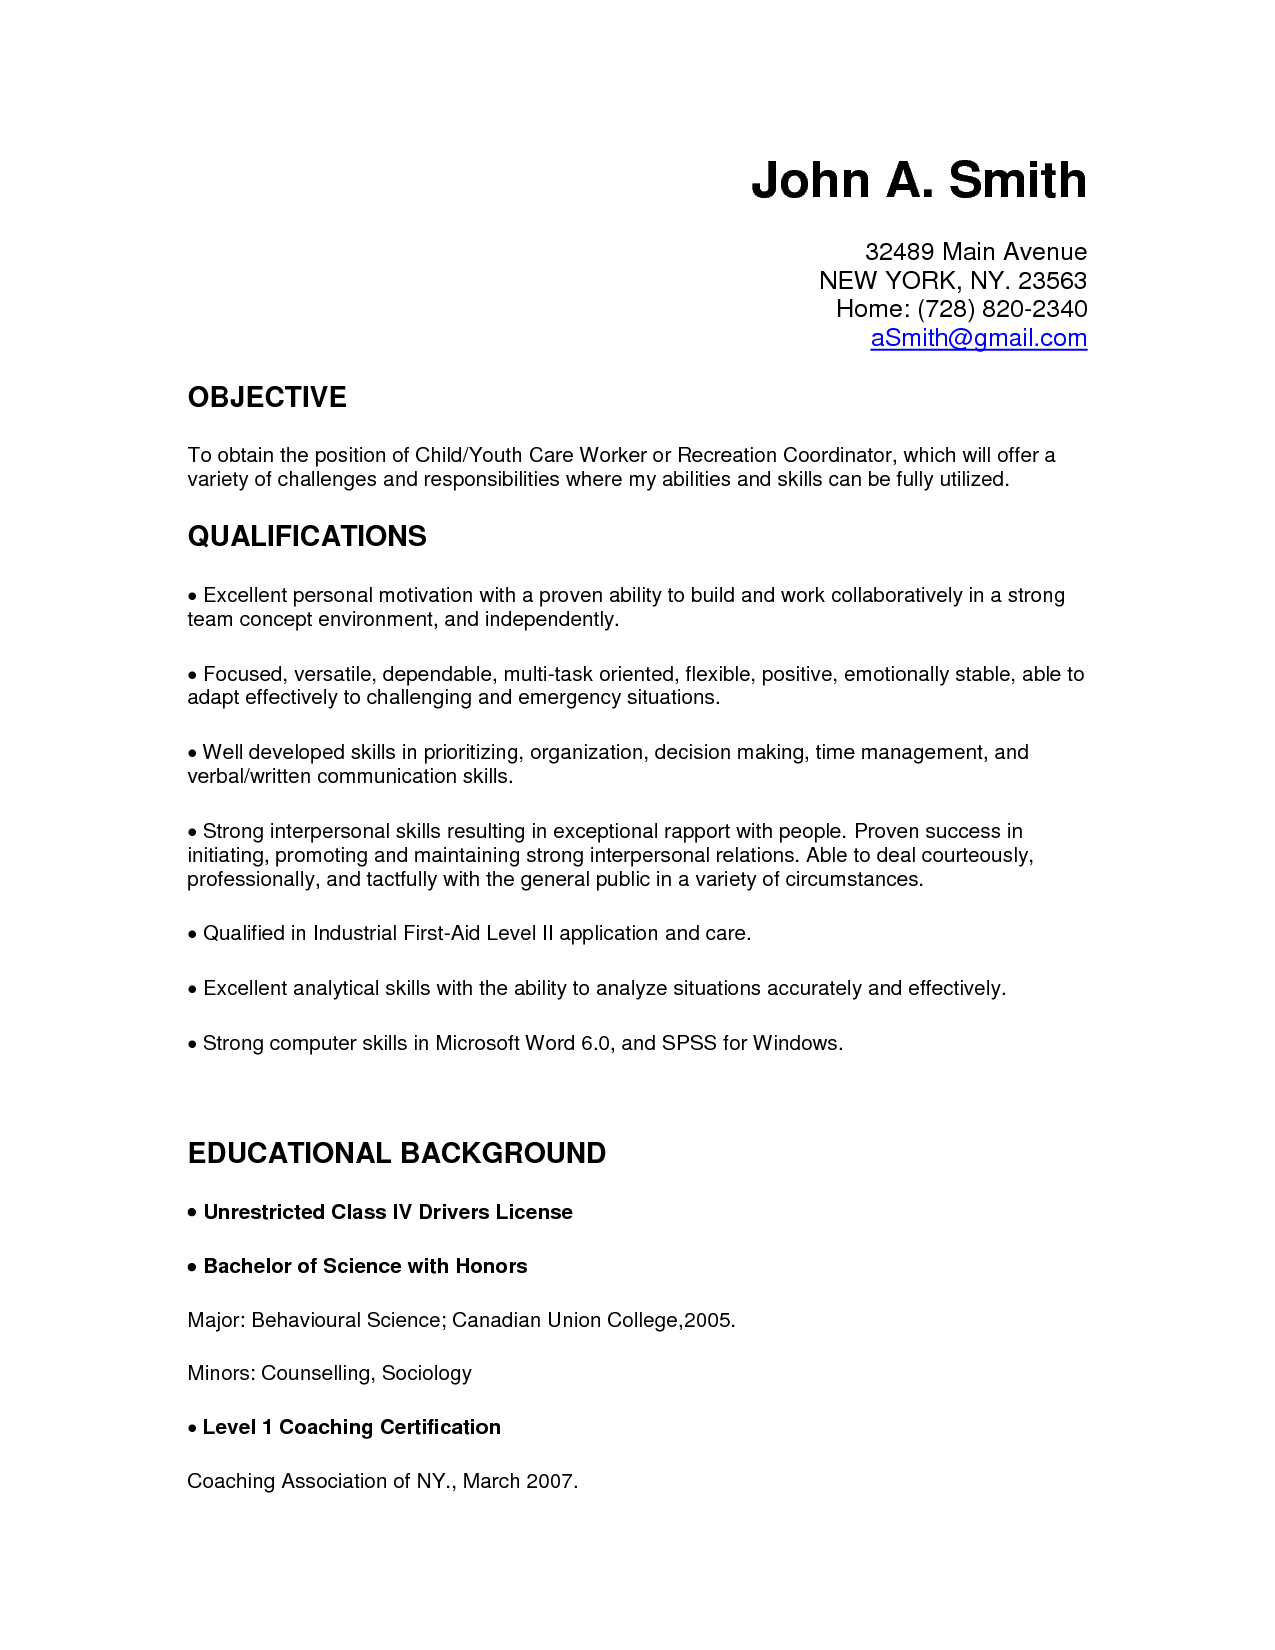 Child Care Resume Skills